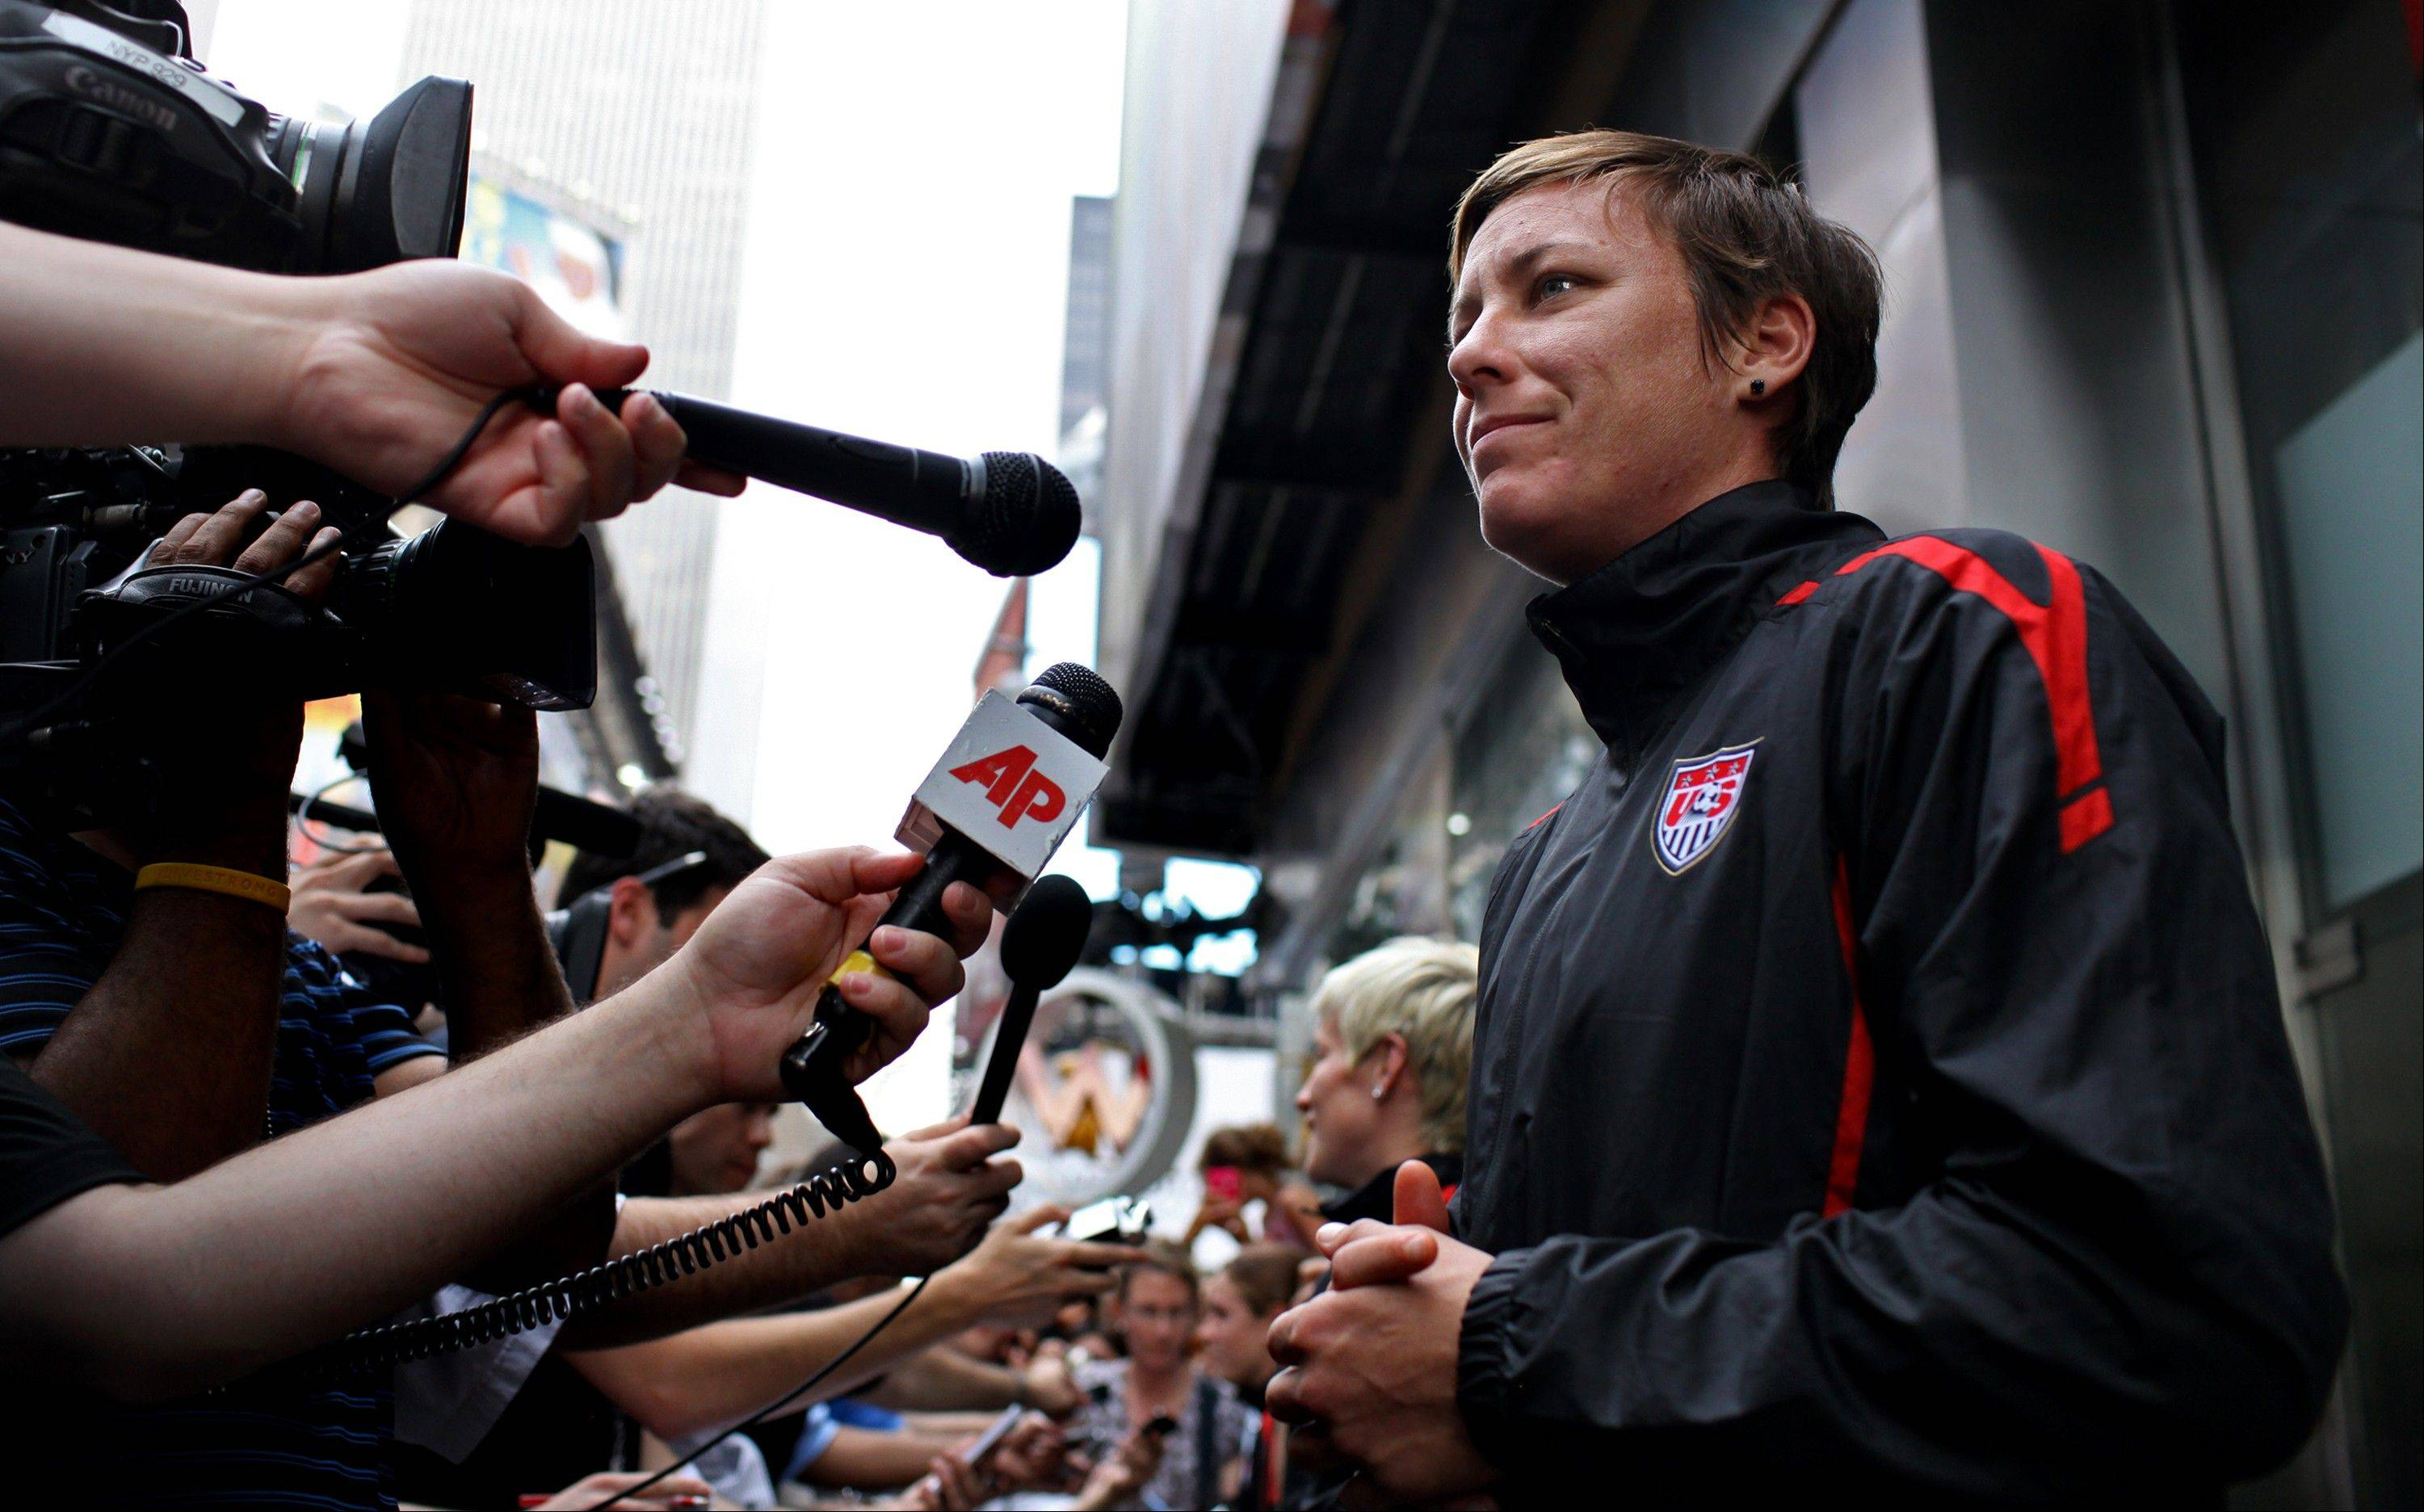 Abby Wambach, talking to reporters in New York's Times Square on Monday after the team's return from Germany, says its too early to think about her future with the U.S. team.